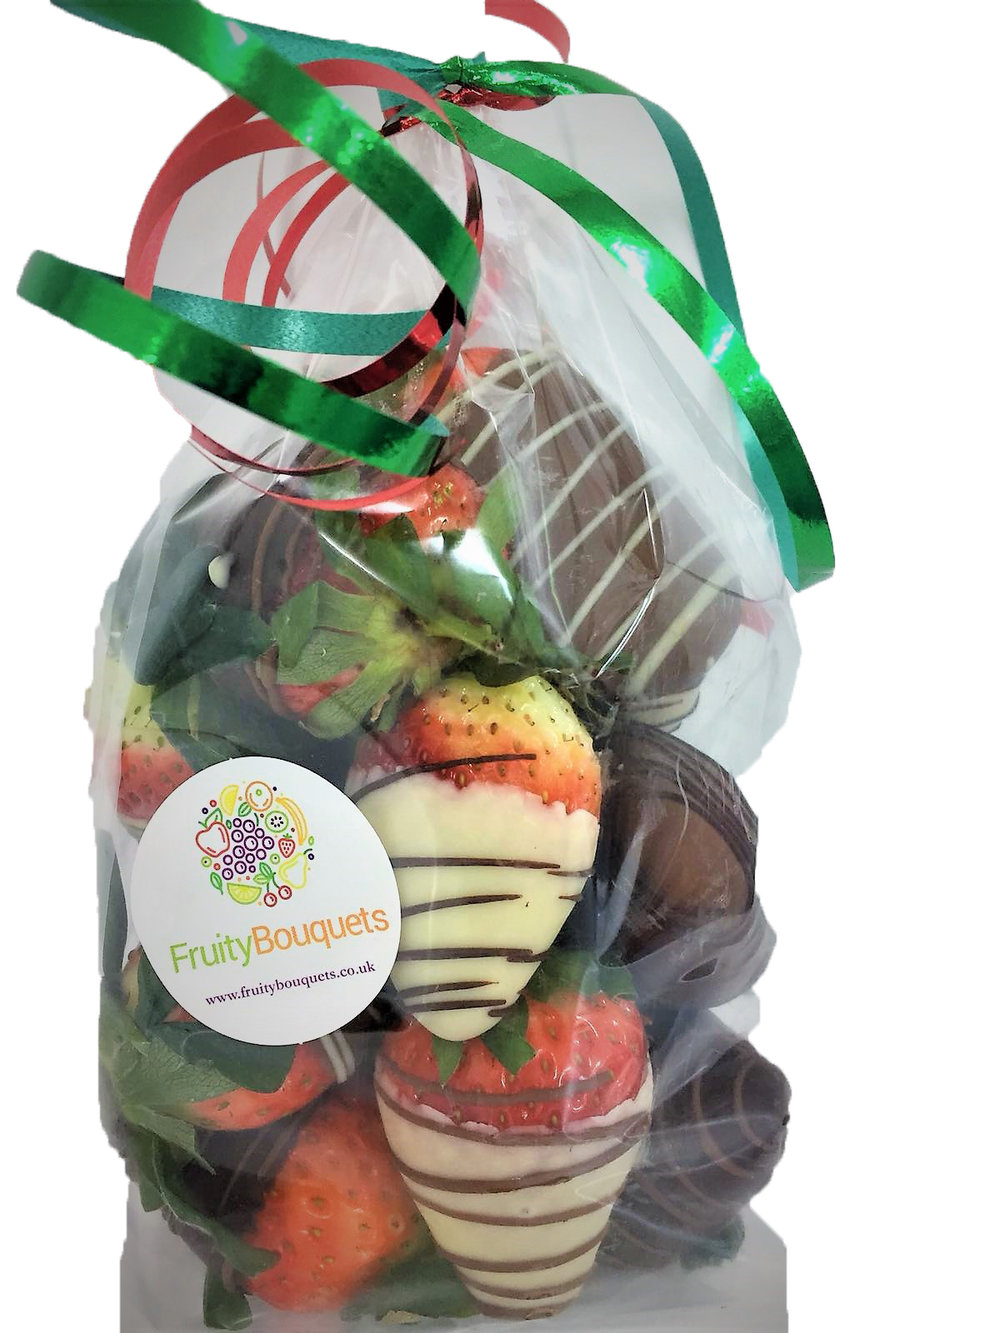 chocolate strawberry taster bag by fruity bouquets.jpg